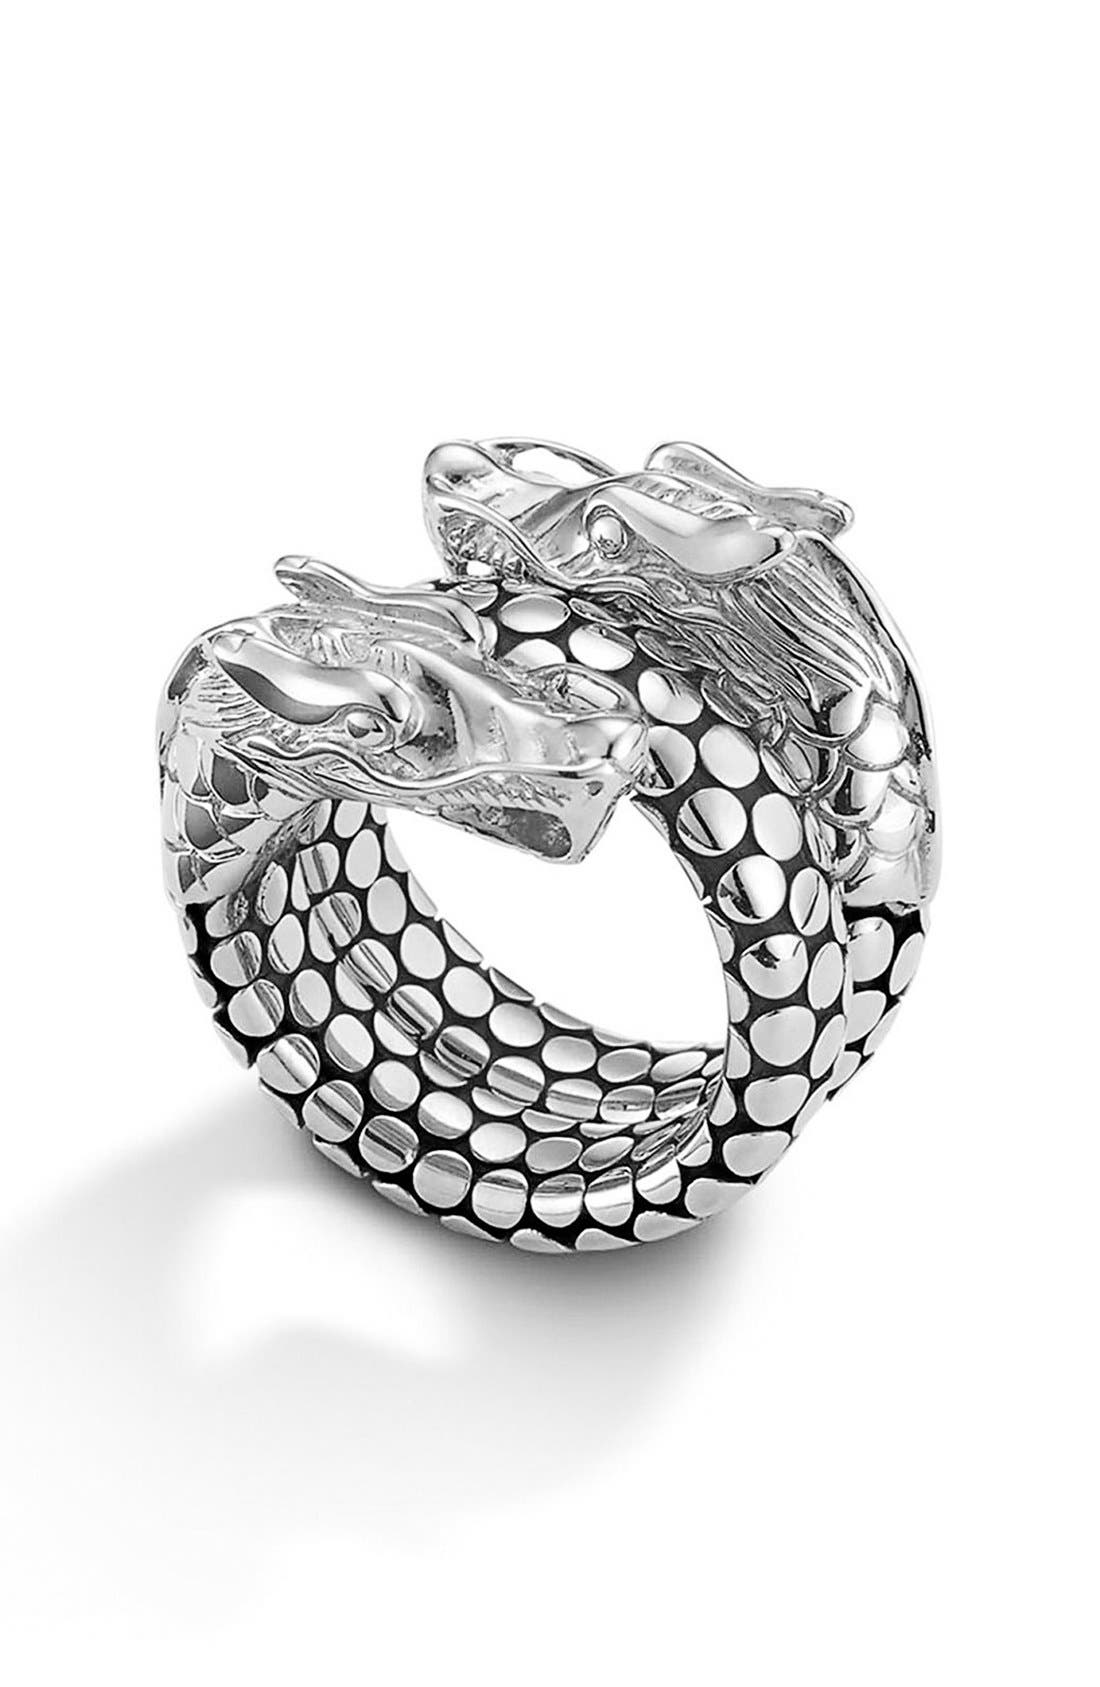 Main Image - John Hardy 'Legends' Dragon Coil Ring